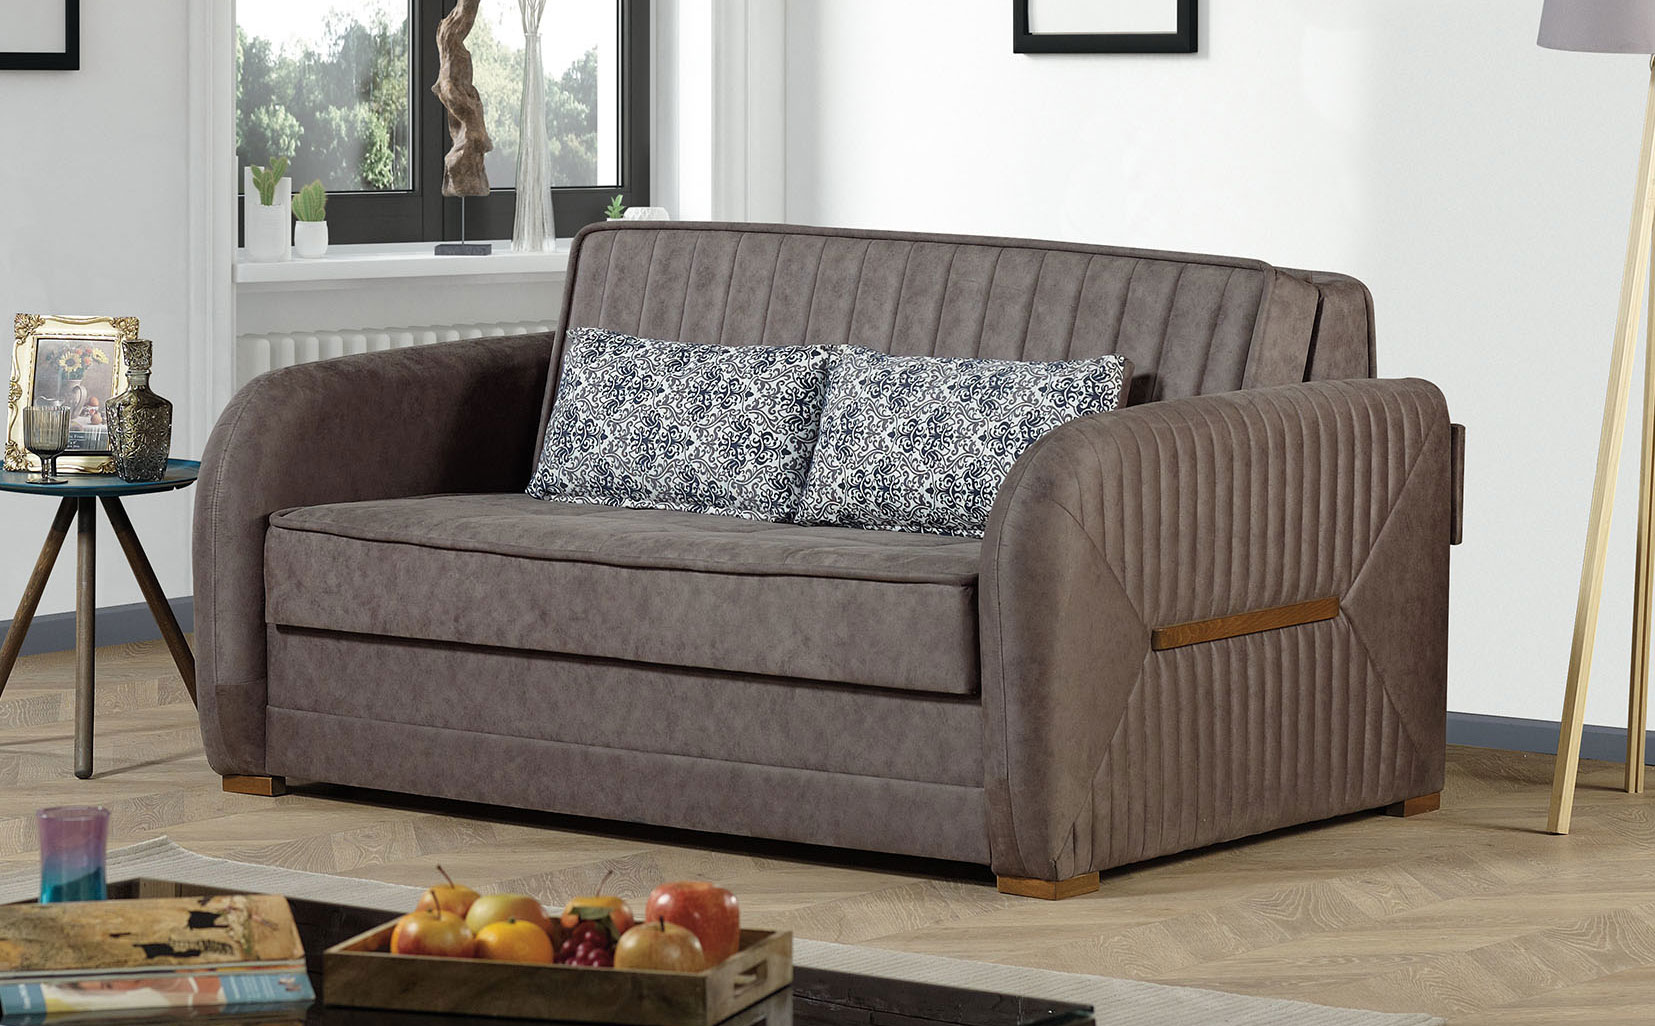 Speedy Gray Fabric Convertible Loveseat by Casamode